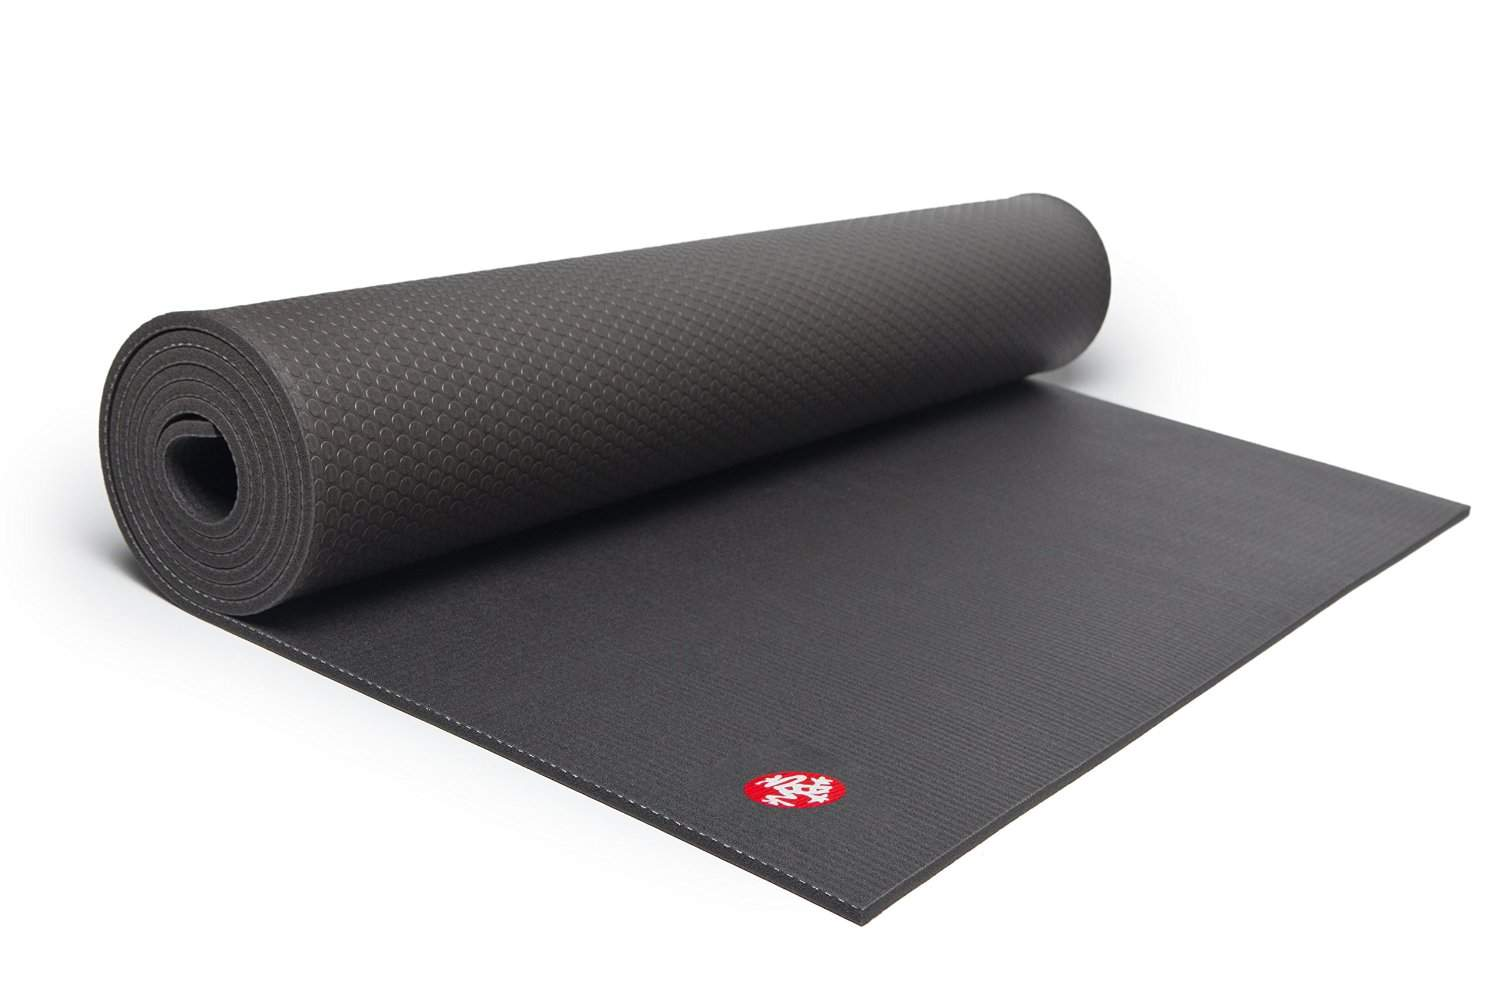 Best Yoga Mats Top Pick Manduka Mat PRO Yoga and Pilates Mat